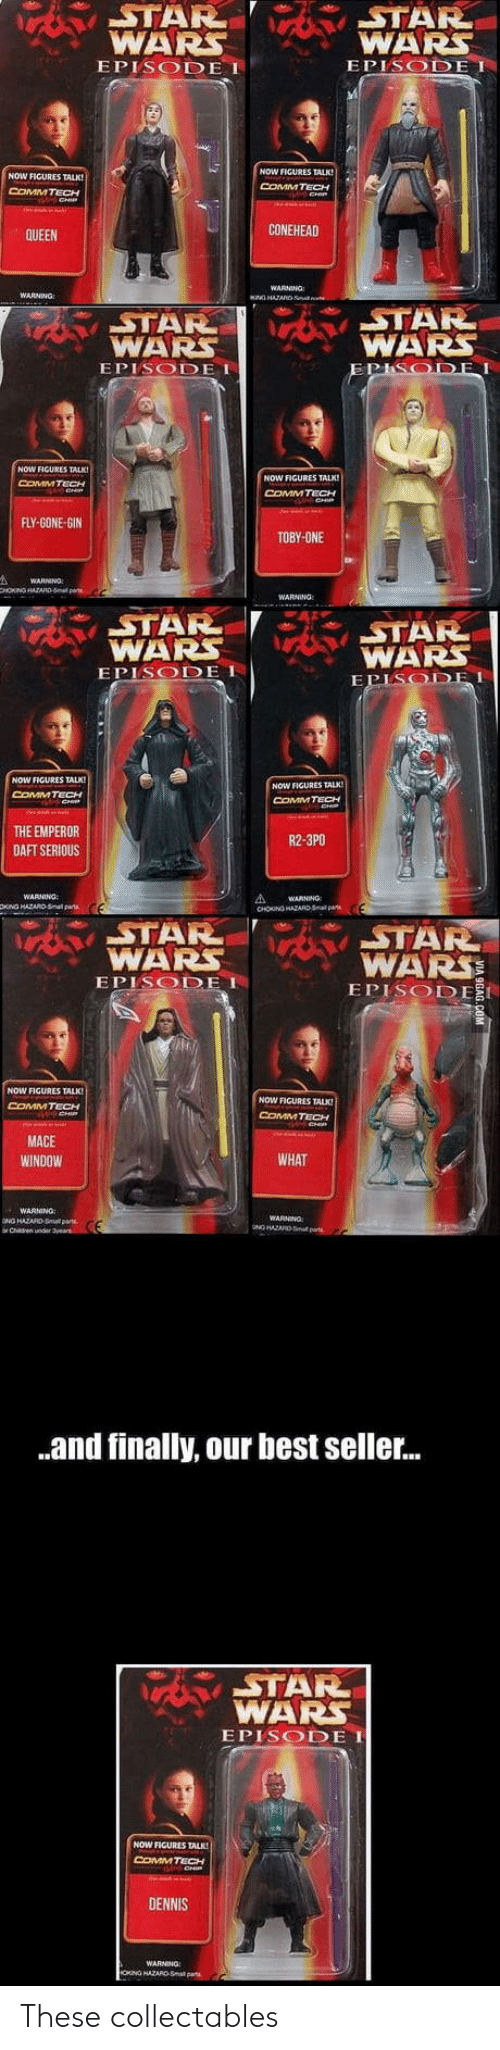 mace: STAR  WARS  EPISODE I  WARS  EPISODE I  NOW FIGURES TALK  COMM TECH  NOW FIGURES TALK!  COMMTECH  CONEHEAD  QUEEN  STAR  WARS  EPISODE I  STAR  WARS  NOW FICURES TALK!  NOW FIGURES TALK  COMMTECH  FLY-GONE-GIN  TOBY-ONE  STAR  WAR  EPISODE  STAR  WARS  DEI  NOW FIGURES TALK  COMMTECH  NOW FIGURES TALK  COMMTECH  HE EMPEROR  DAFT SERIOUS  R2-3PO  WARNING  STAR  WARSSTAR  WARS  EPISODEI  EPISODE I  NOW FIGURES TALK  CoMMTECH  NOW FIGURES TALK  COMMTECH  MACE  WINDOW  WHAT  WARNNG  WARNING  .and finally, our best seller...  STAR  WARS  EPISODE I  NOW FIGURES TALK  ComMTECH  DENNIS  WARNING These collectables